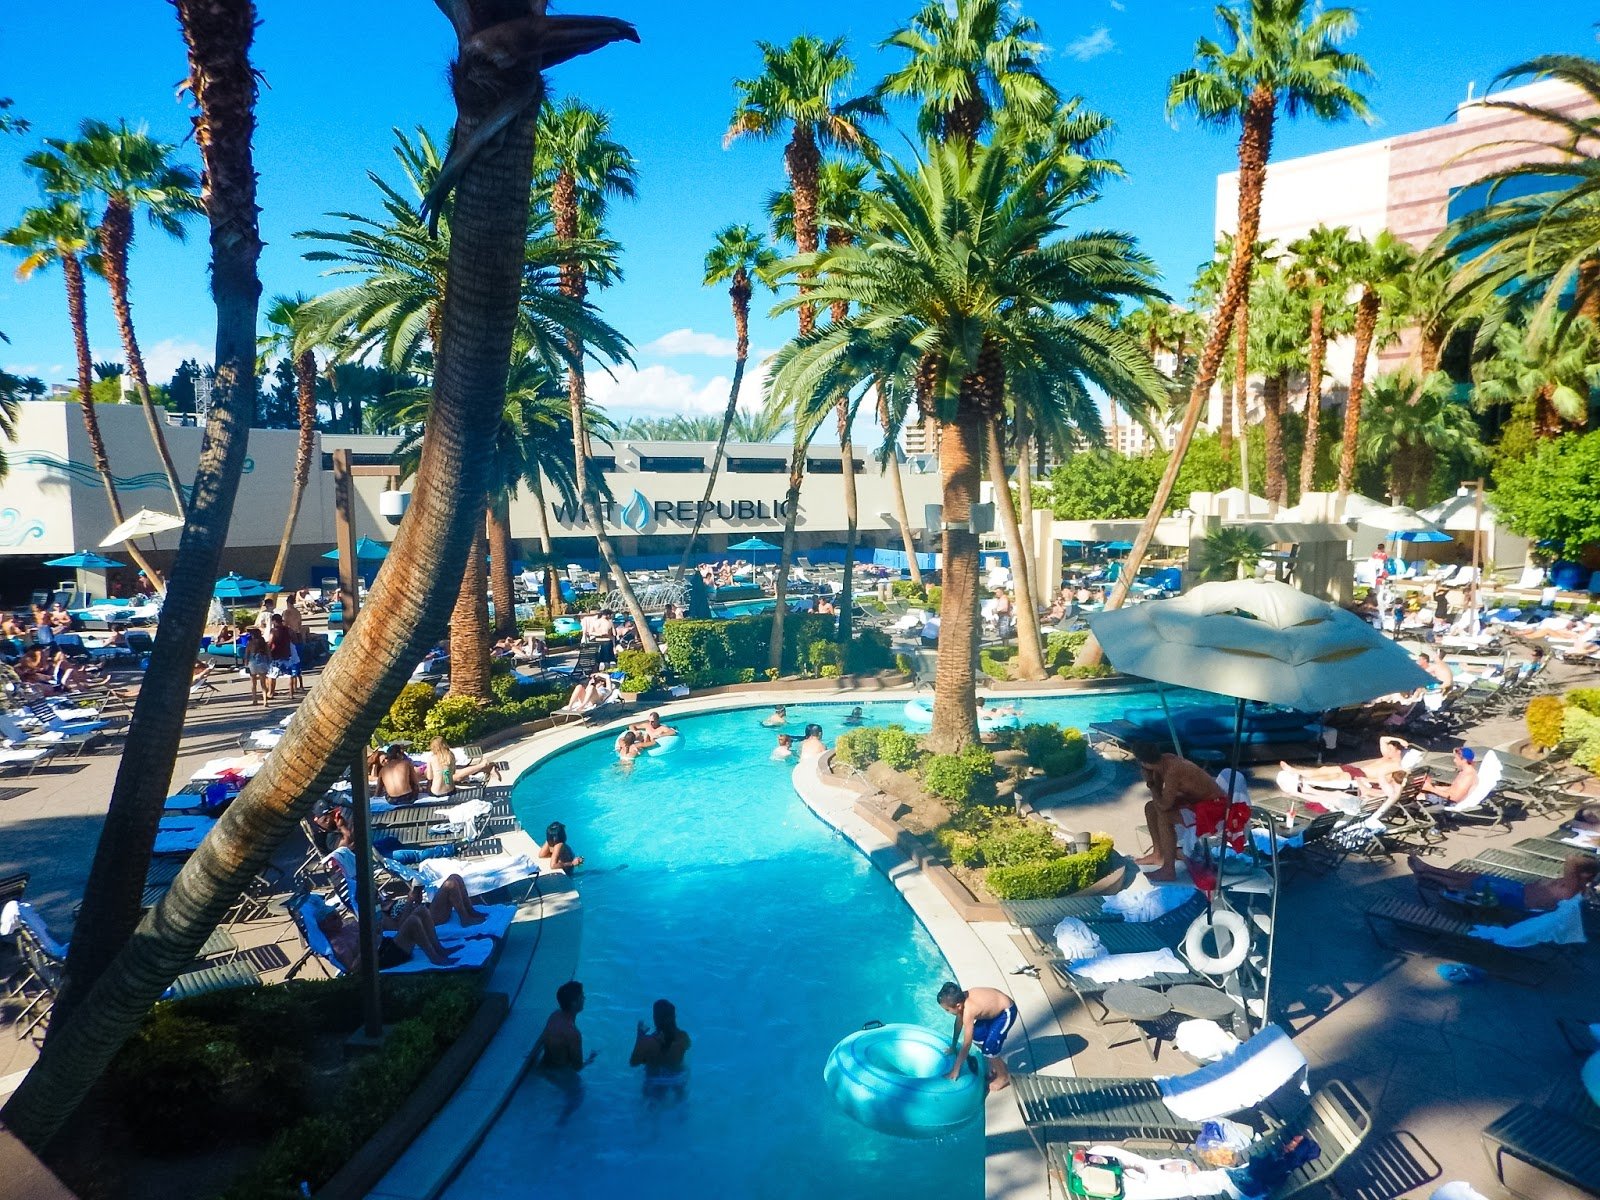 Mgm Grand Las Vegas Review A Make Believe World